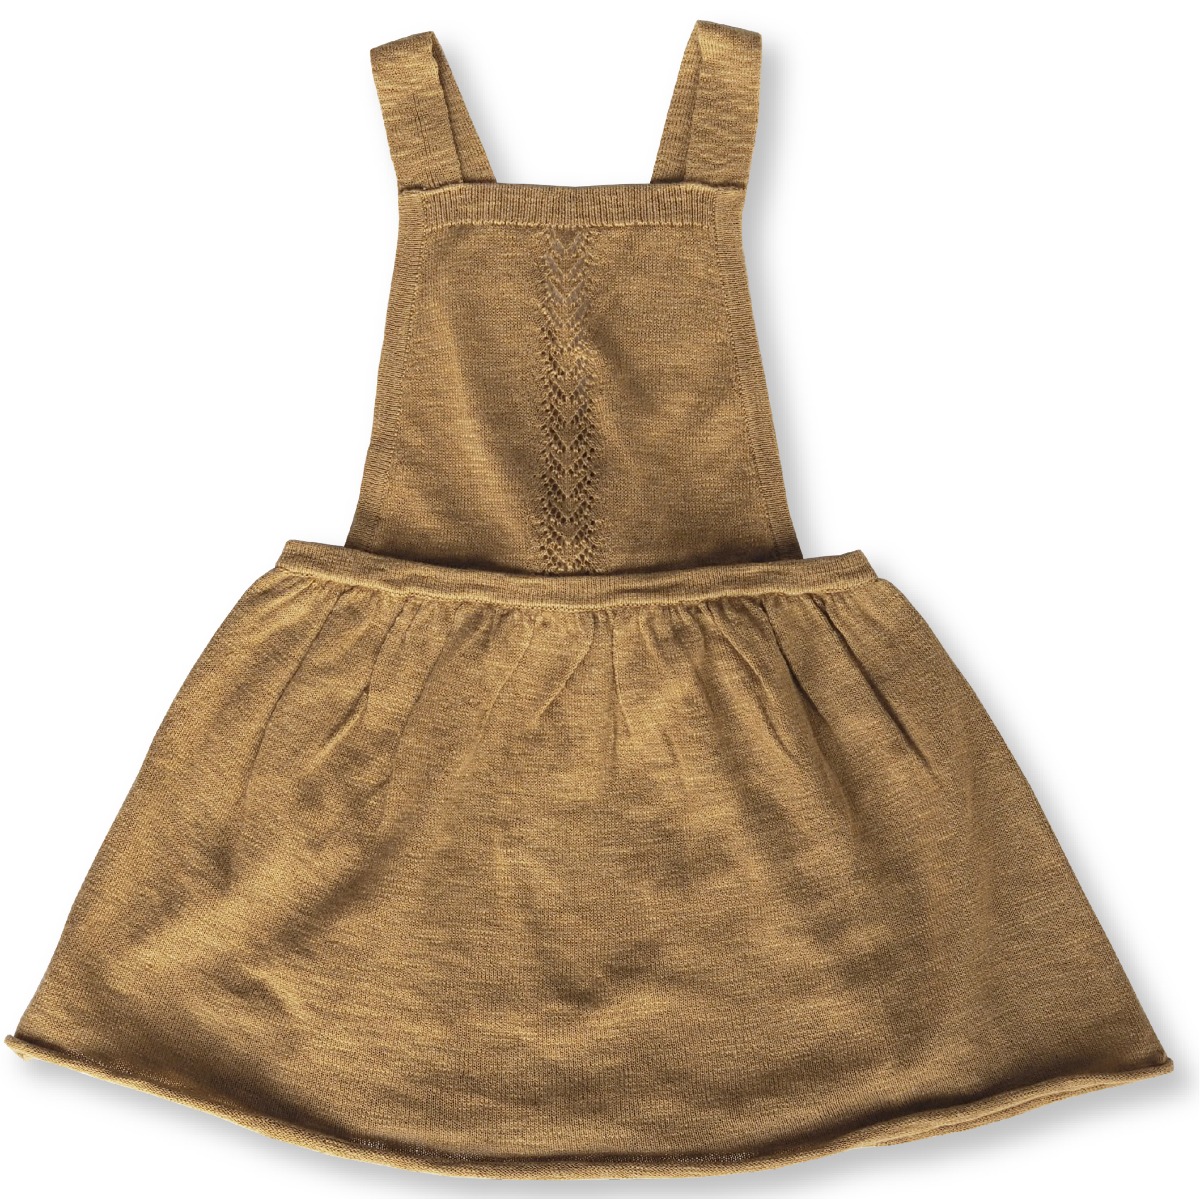 US stockist of Grown Clothing's slub linen dress in warm harvest gold.  Made from a cotton line blend, with adjustable straps that tie in a bow at the back.  Features a rolled hem and sweet pointelle knit details down the front of the dress.